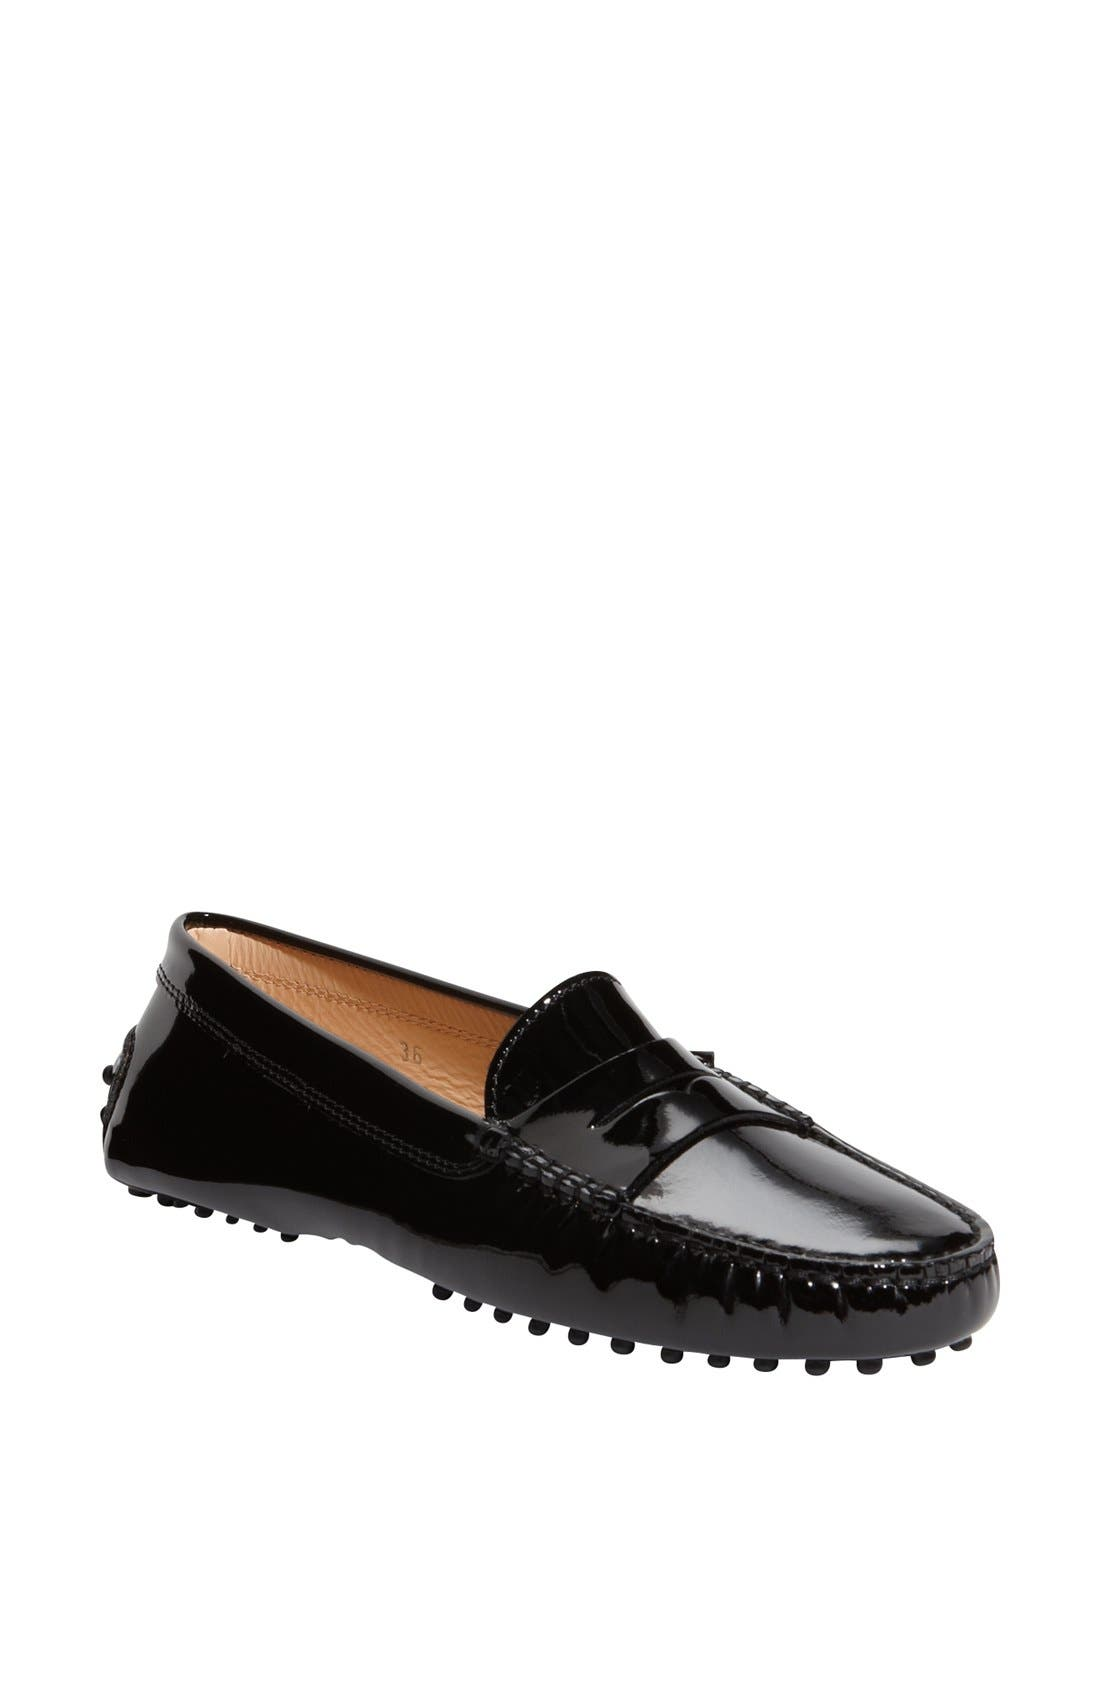 'Gommini' Moccasin,                         Main,                         color, Black